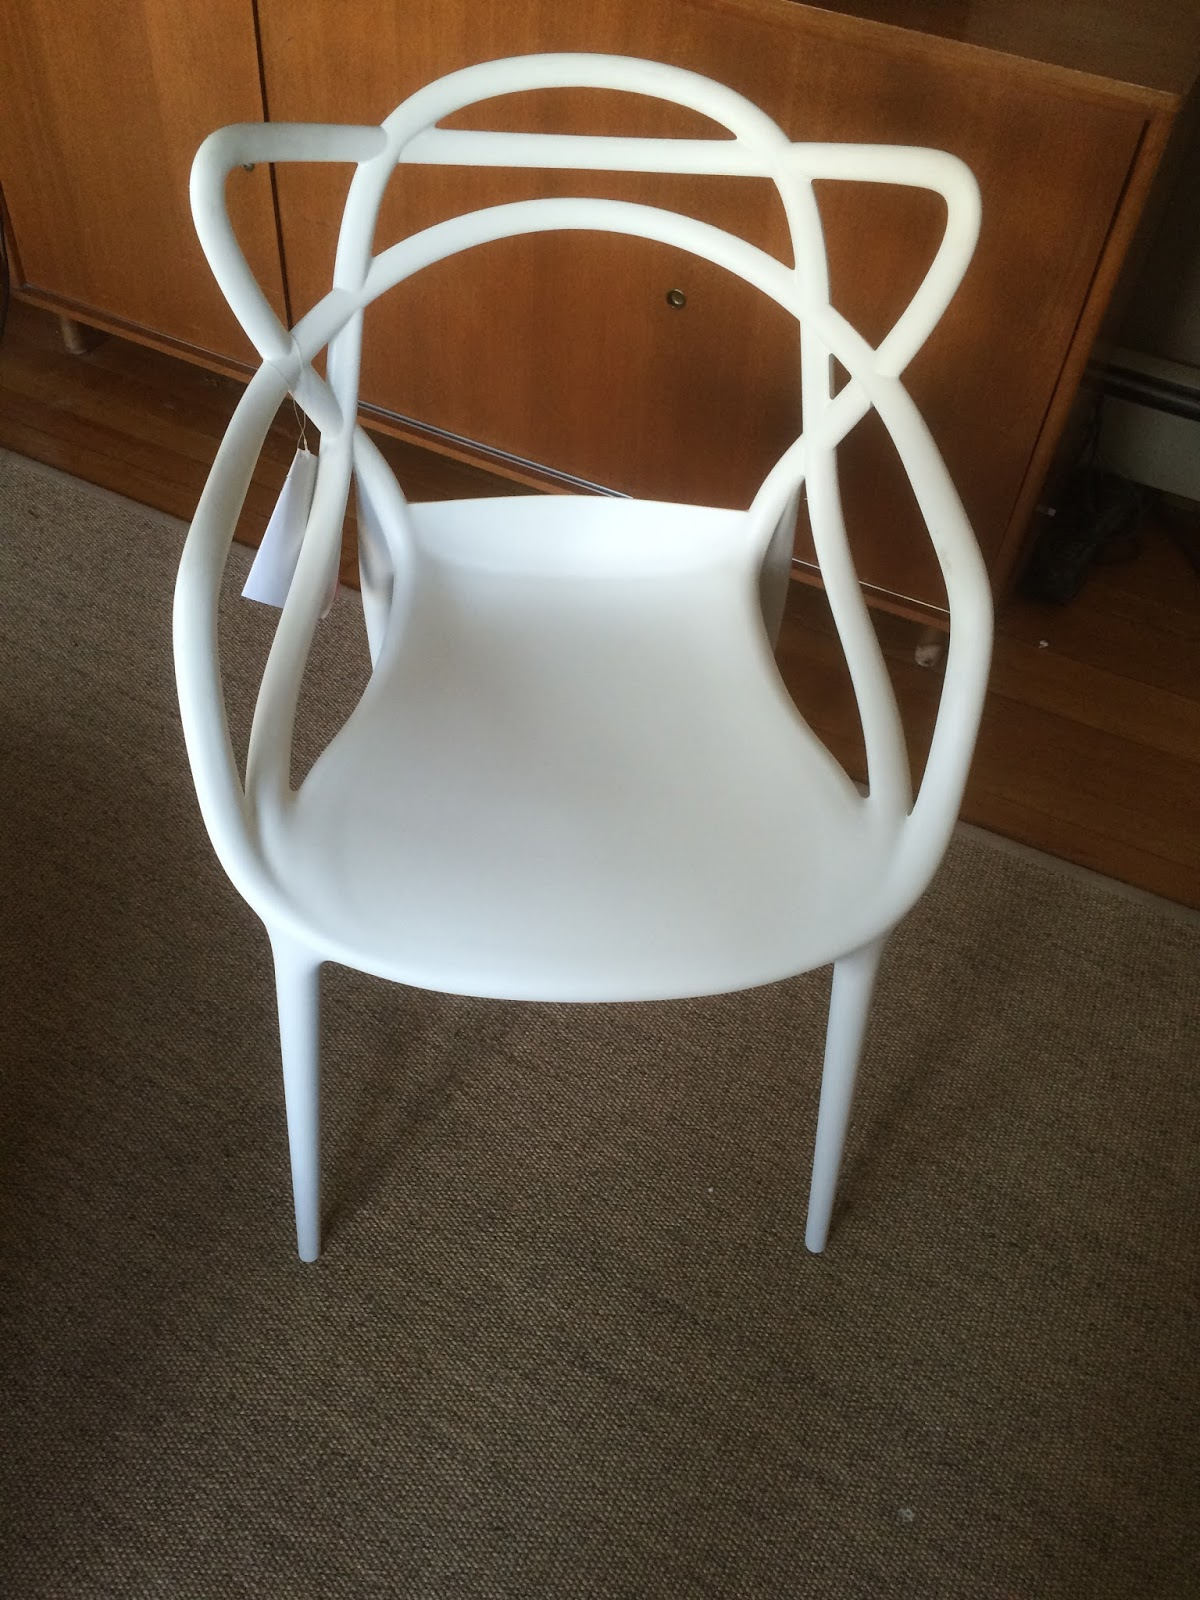 BlandHaus Review The Masters Chair by Kartell Three chairs in one